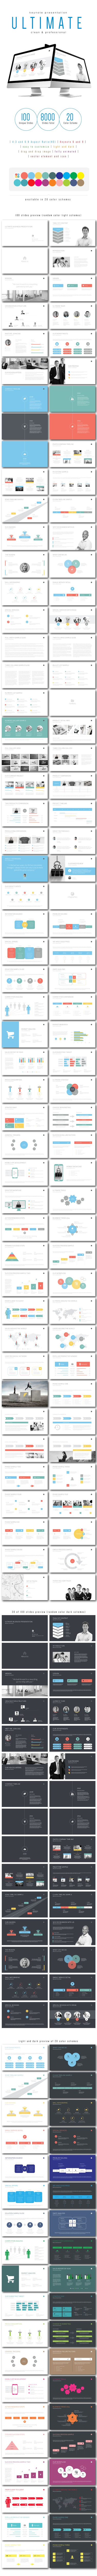 Powerpoint / Keynote Presentation Template on Behance